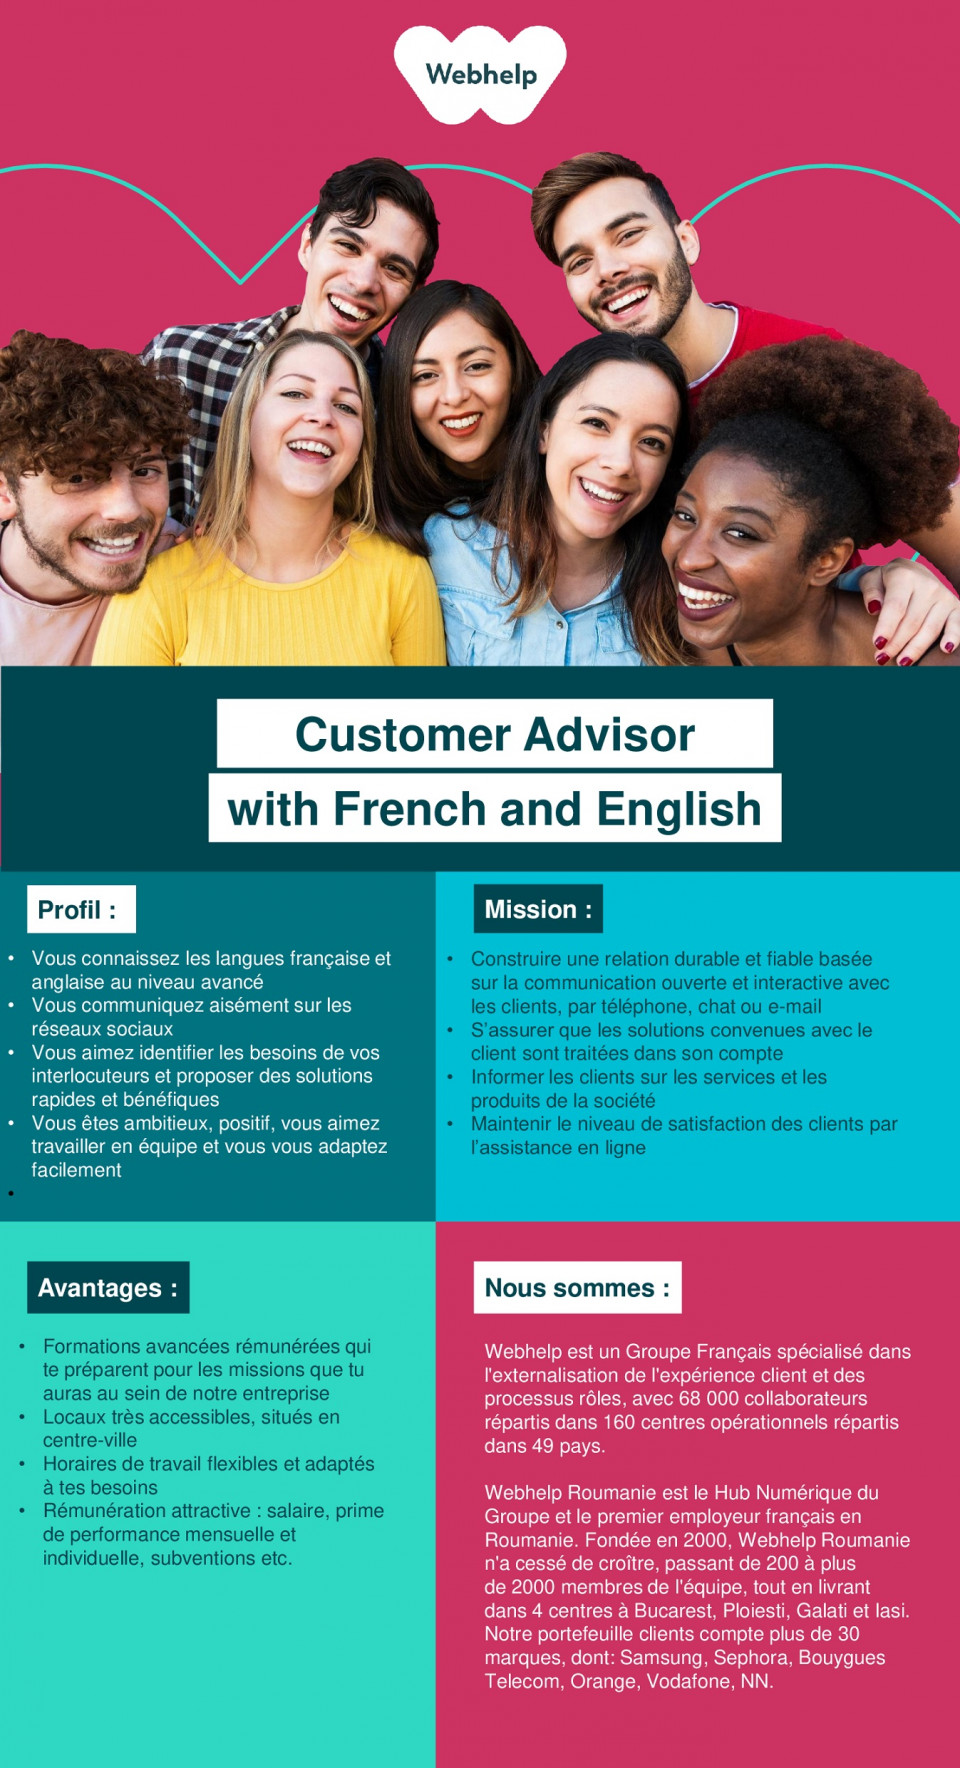 Customer Advisor with French and English call center, relationare clienti, customer support, advisor, customer care, franceza, engleza    Customer Advisor with Dutch  Dutch language proficiency and English intermediate level  Customer-oriented person with excellent communication skills  Keen learner and active listener  Autonomous, with good PC skills  Proactive and a great team player  Create excitement around Client's products and offer information to Customers about their accounts  Provide solutions to Customers' issues in order to deliver an excellent experience and create brand engagement  Get involved in developing new processes as you will be part of our exciting new project from the beginning  Keep on learning and advancing your career through our continuous developement programs  A pleasant working environment  Very attractive salary package and performance bonus  Schedule: Monday to Friday (10:00 – 19:00)  We want you to be successful and to ensure you maximize your income, you will receive full training and support.  We are a global community of passionate, fun-loving people who thrive on making a difference on behalf of the world's most exciting brands. We use our smarts, our hearts and a drive to make business more human.  Webhelp is a French Group specialised in customer experience and business process outsourcing, with over 55,000 employees working in 140 operations centres located across 36 countries. Number 1 in Europe and ranked in Top 7 Best Global BPO, Webhelp Group continues to increase its teams, promoting a policy of customer and employee satisfaction.   Webhelp Romania is the Group's Digital Hub and the leading French employer in Romania. Our Client portfolio comprises more than 30 brands, including Samsung, Sephora, Bouygues Telecom, Orange, Vodafone and NN.